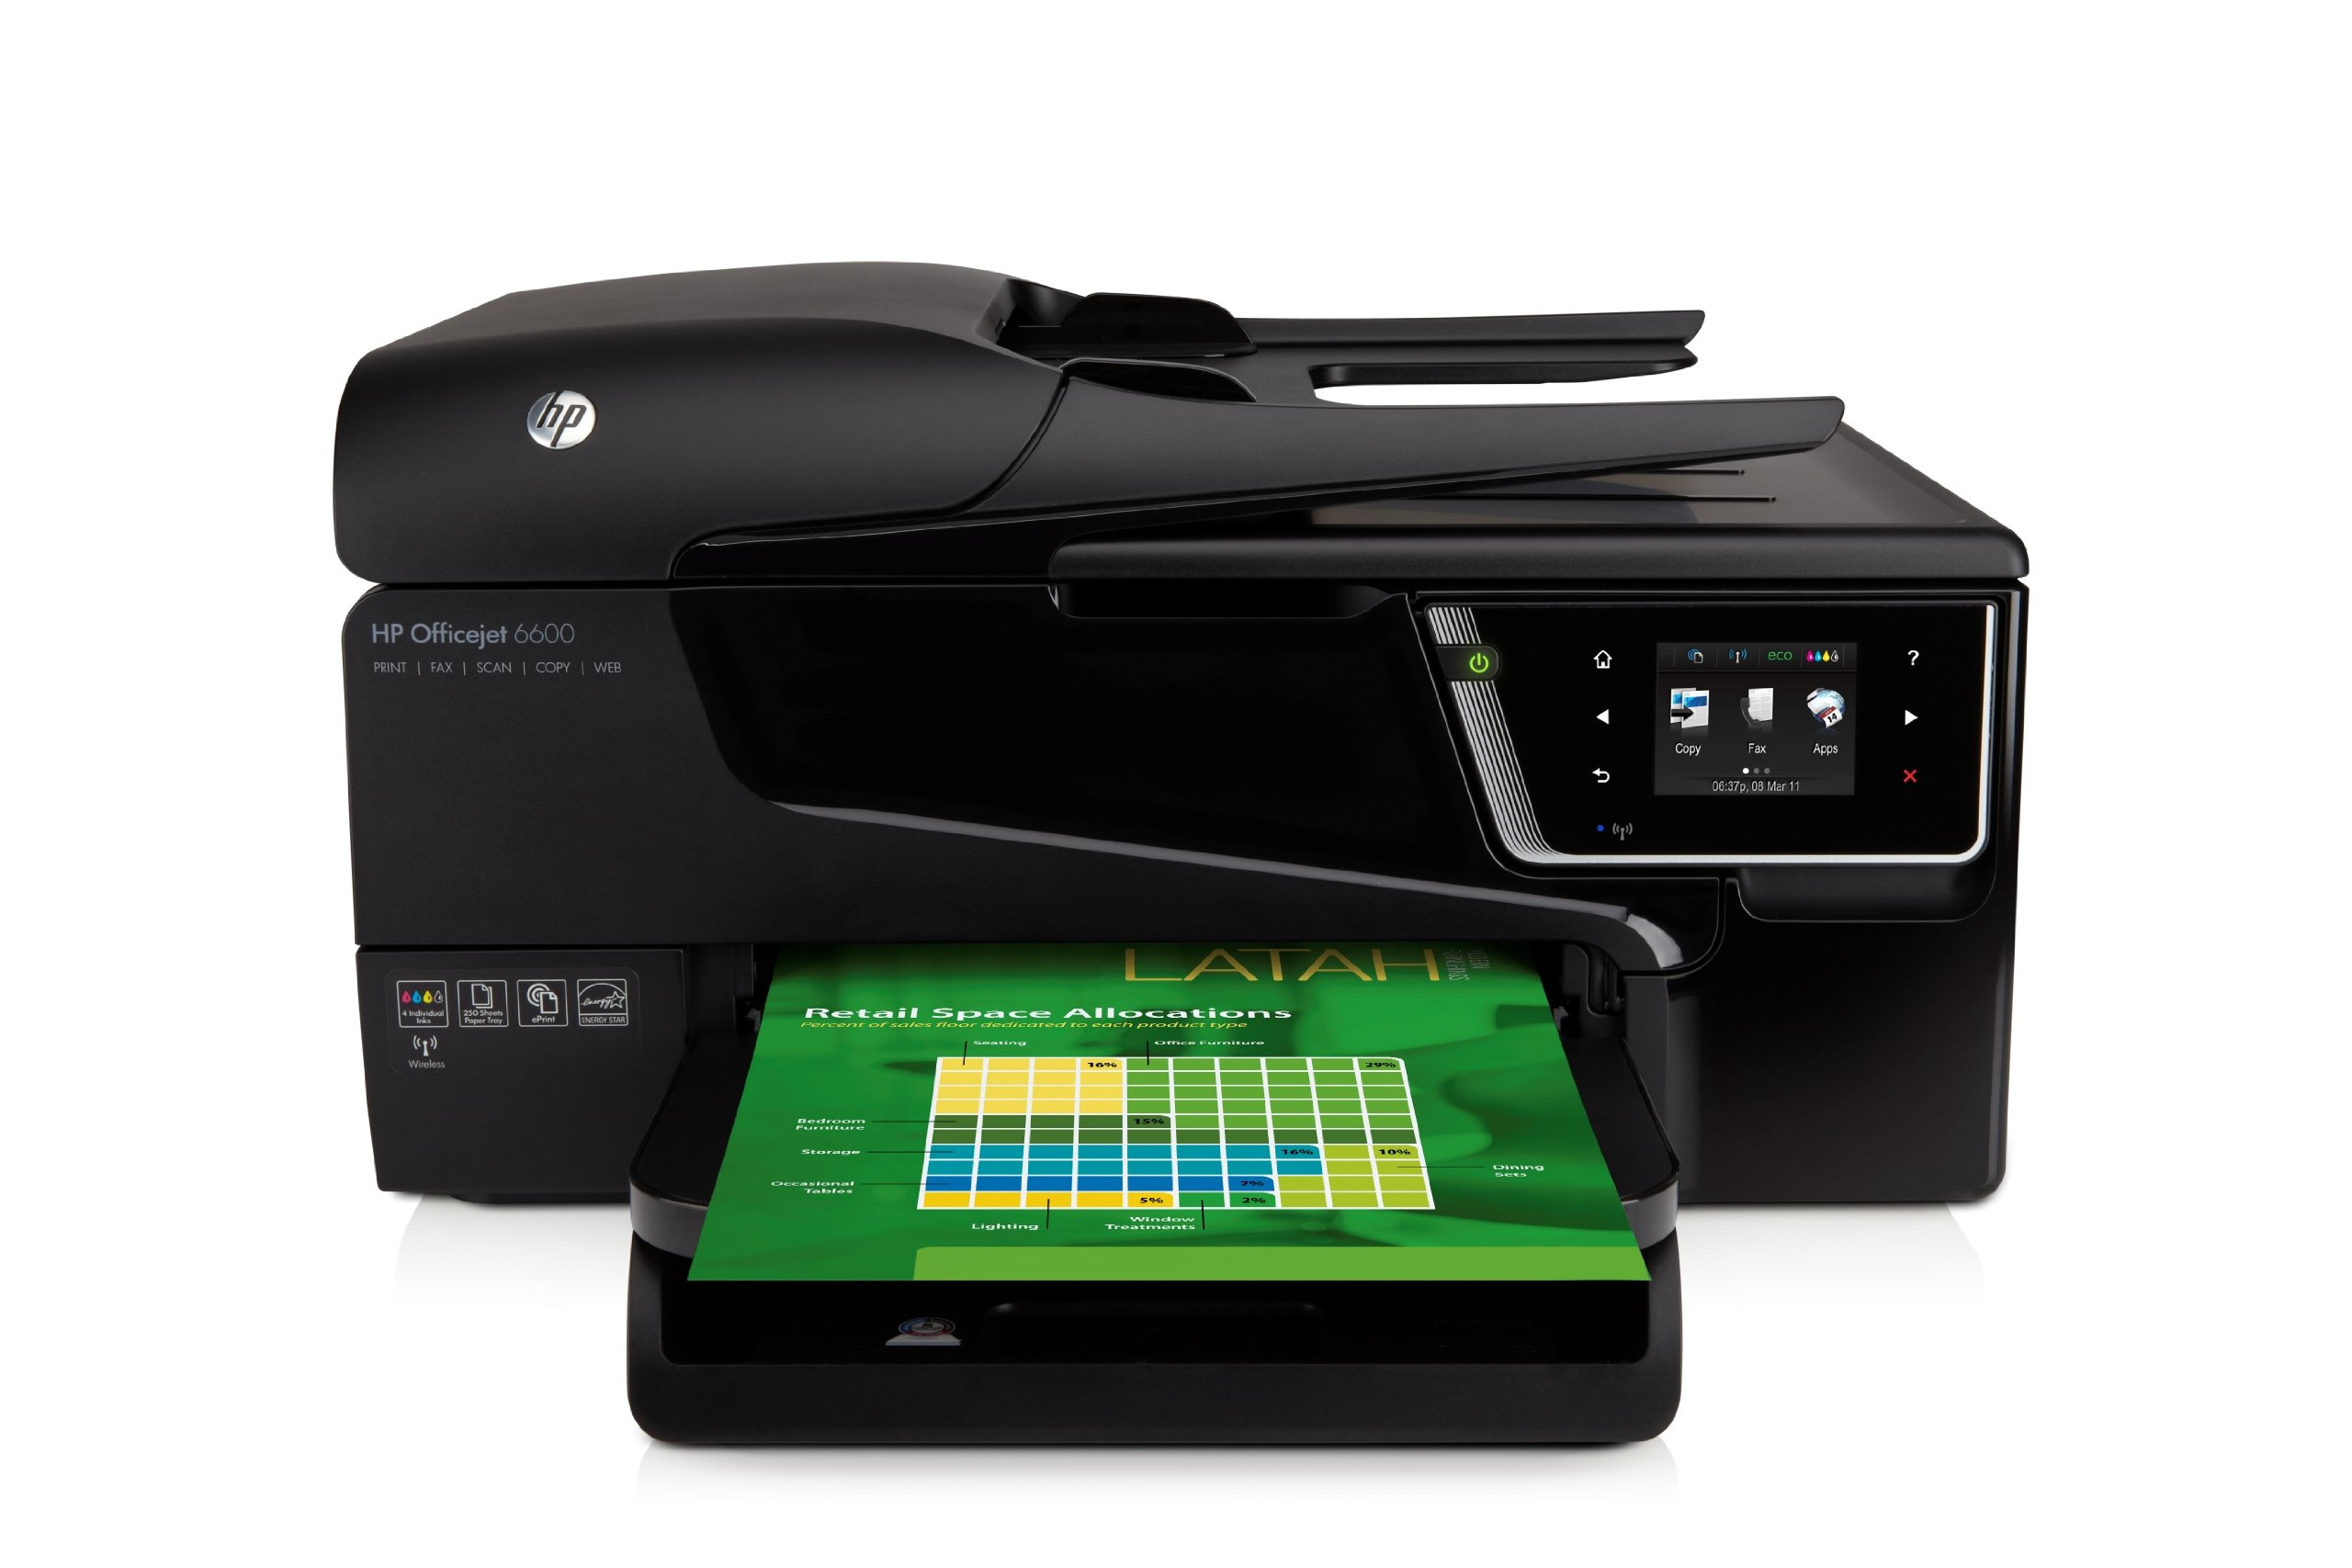 HP Officejet 6600 e-All-in-One Wireless Color Photo Printer with Scanner, Copier and Fax by HP